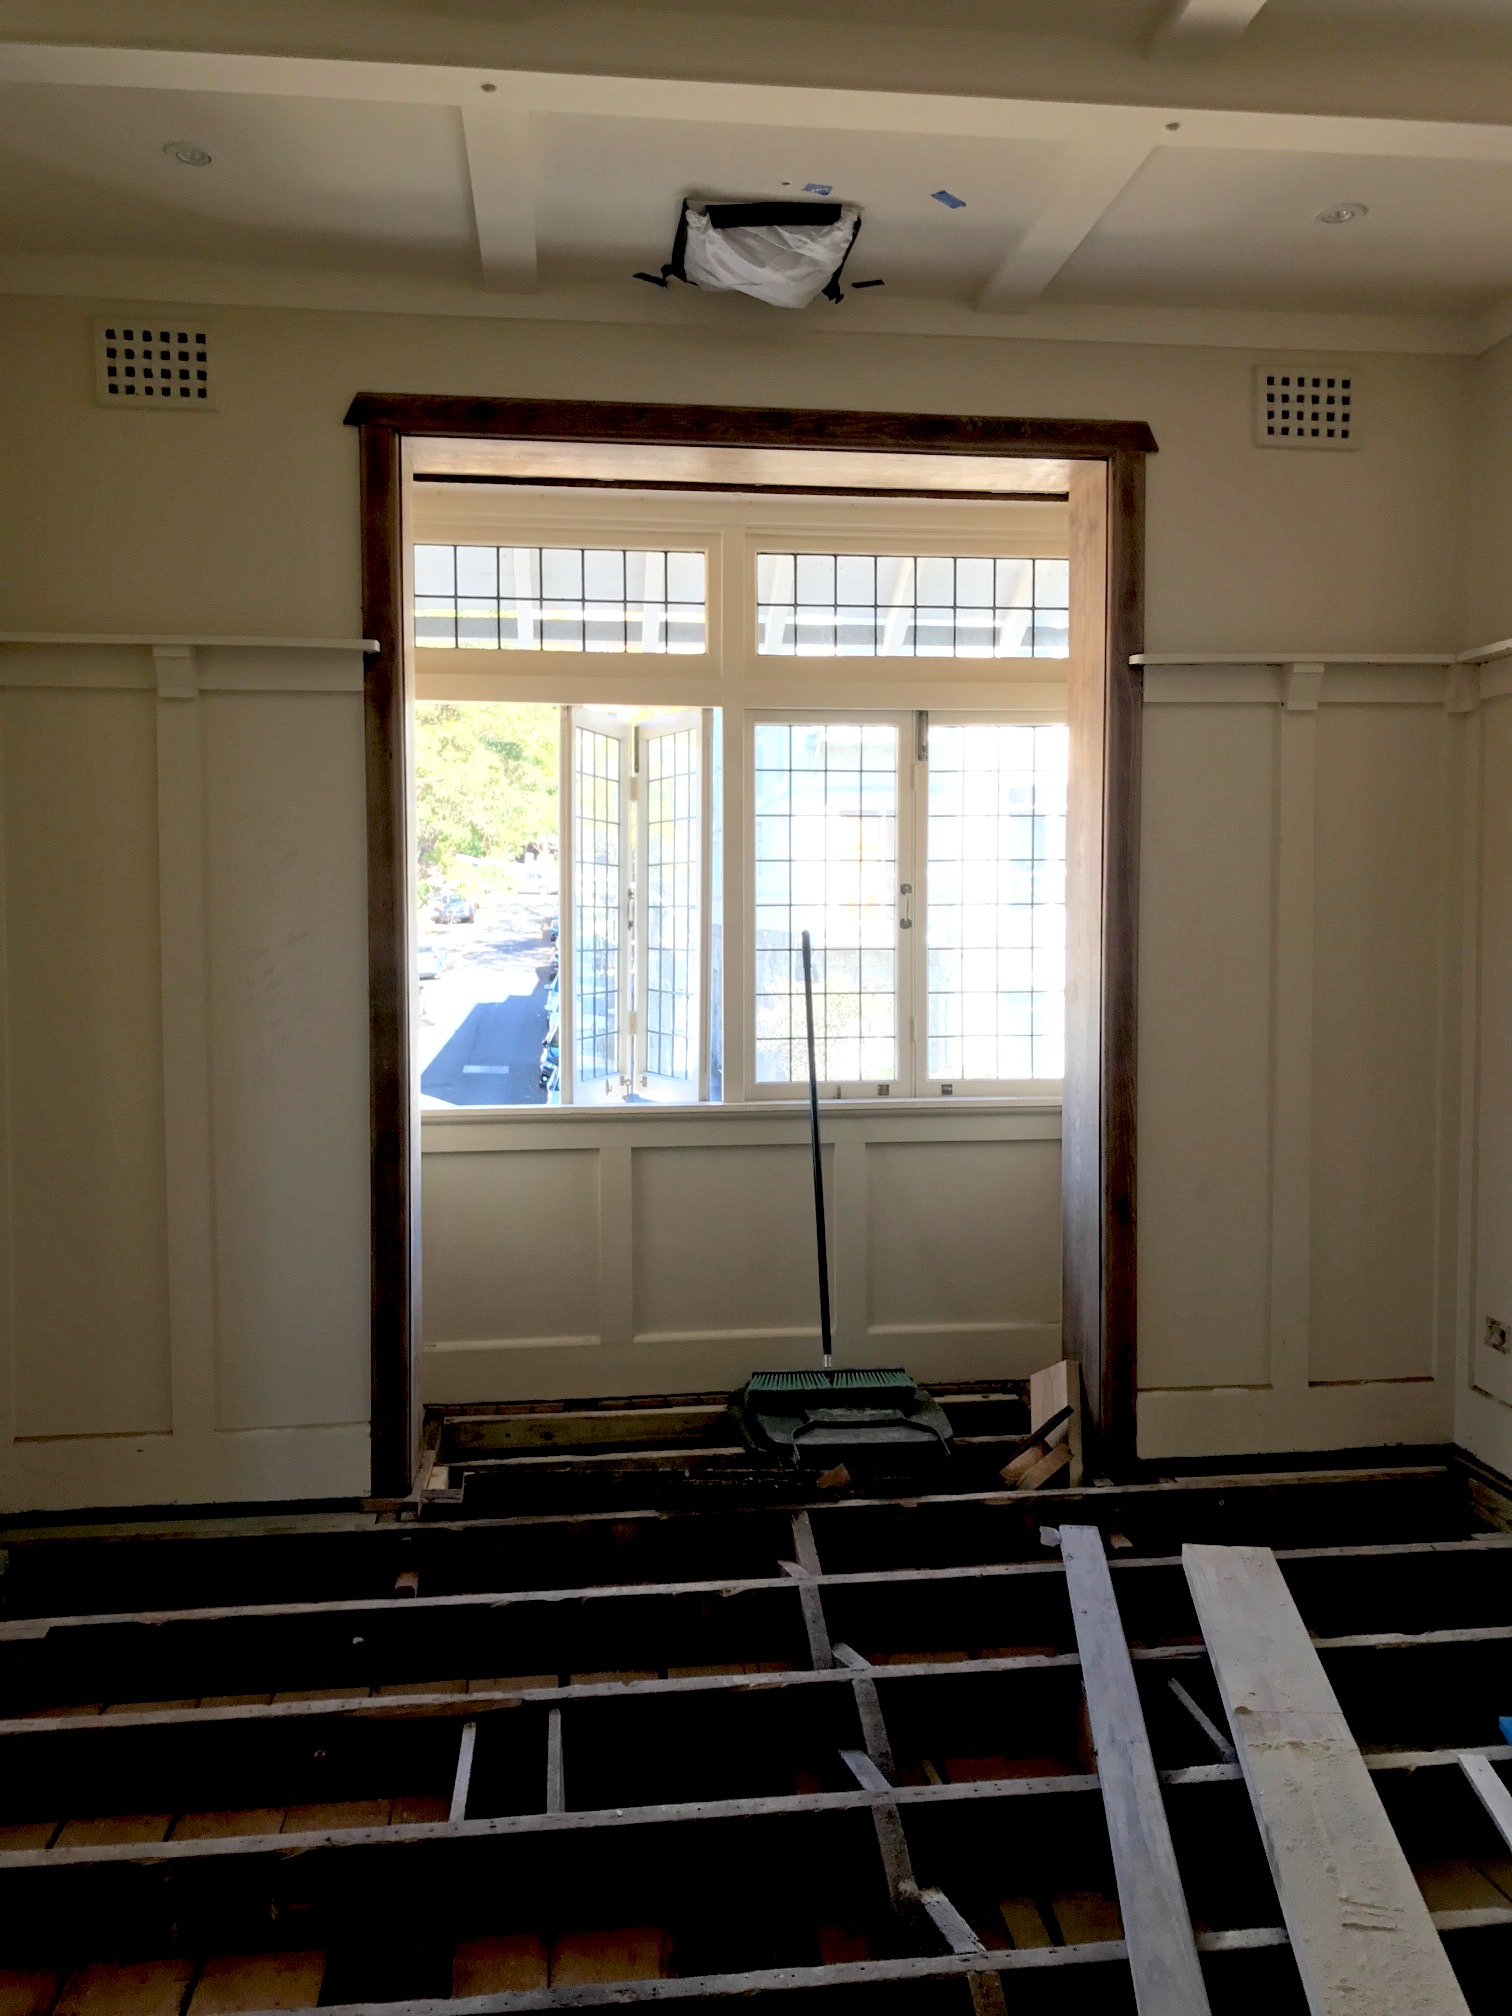 We will retain the existing panelling details but modernise with a fresh coat of paint throughout